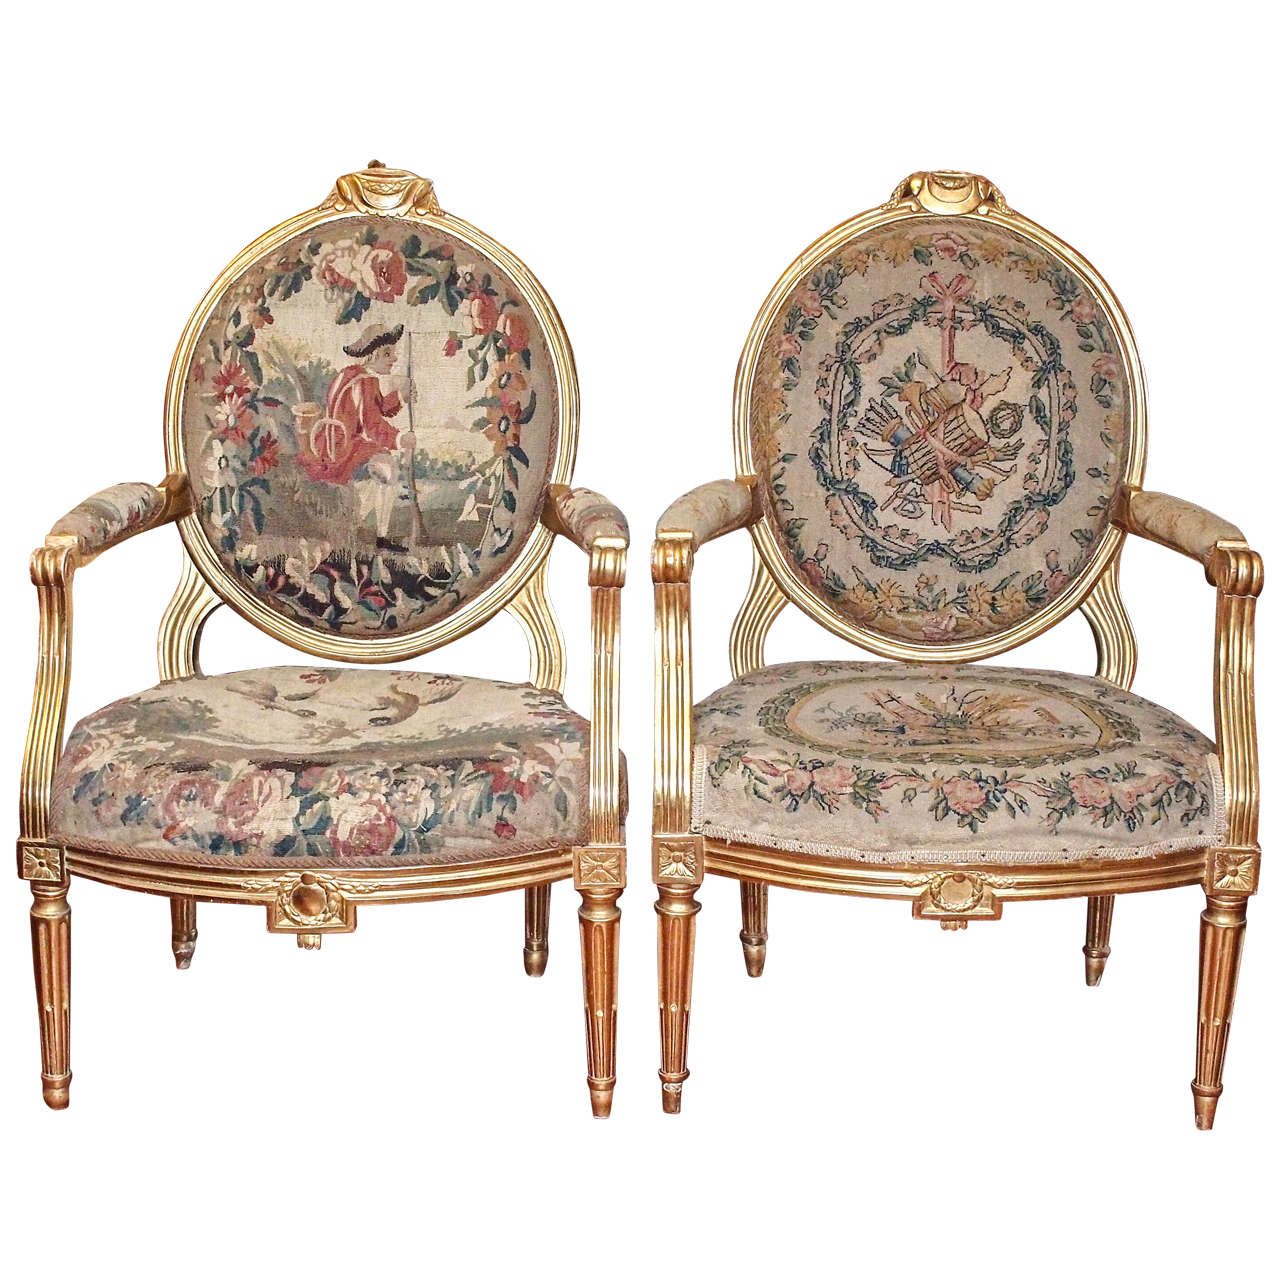 Pair Of Period Louis Xvi Gilt Oval Back Chairs Antique French Furniture Armchair Outdoor Dining Chair Cushions